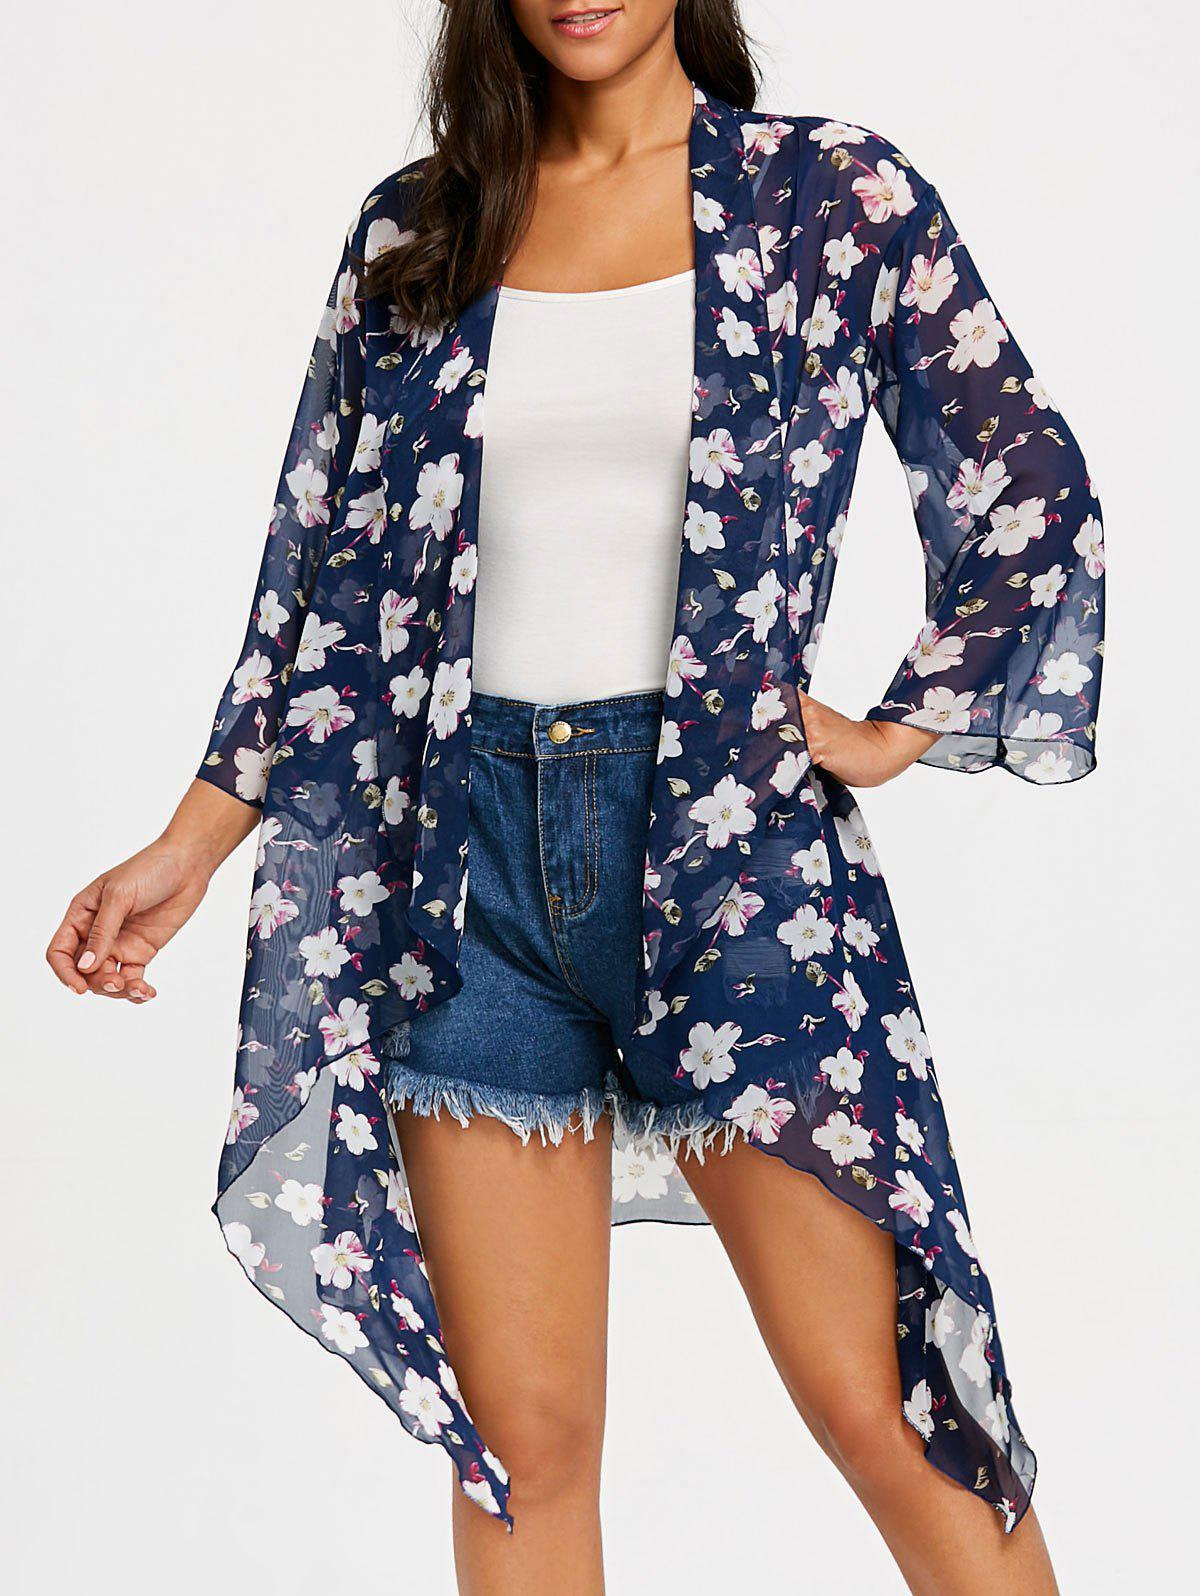 Floral See Through Chiffon Cover Up Kimono - BLUE XL